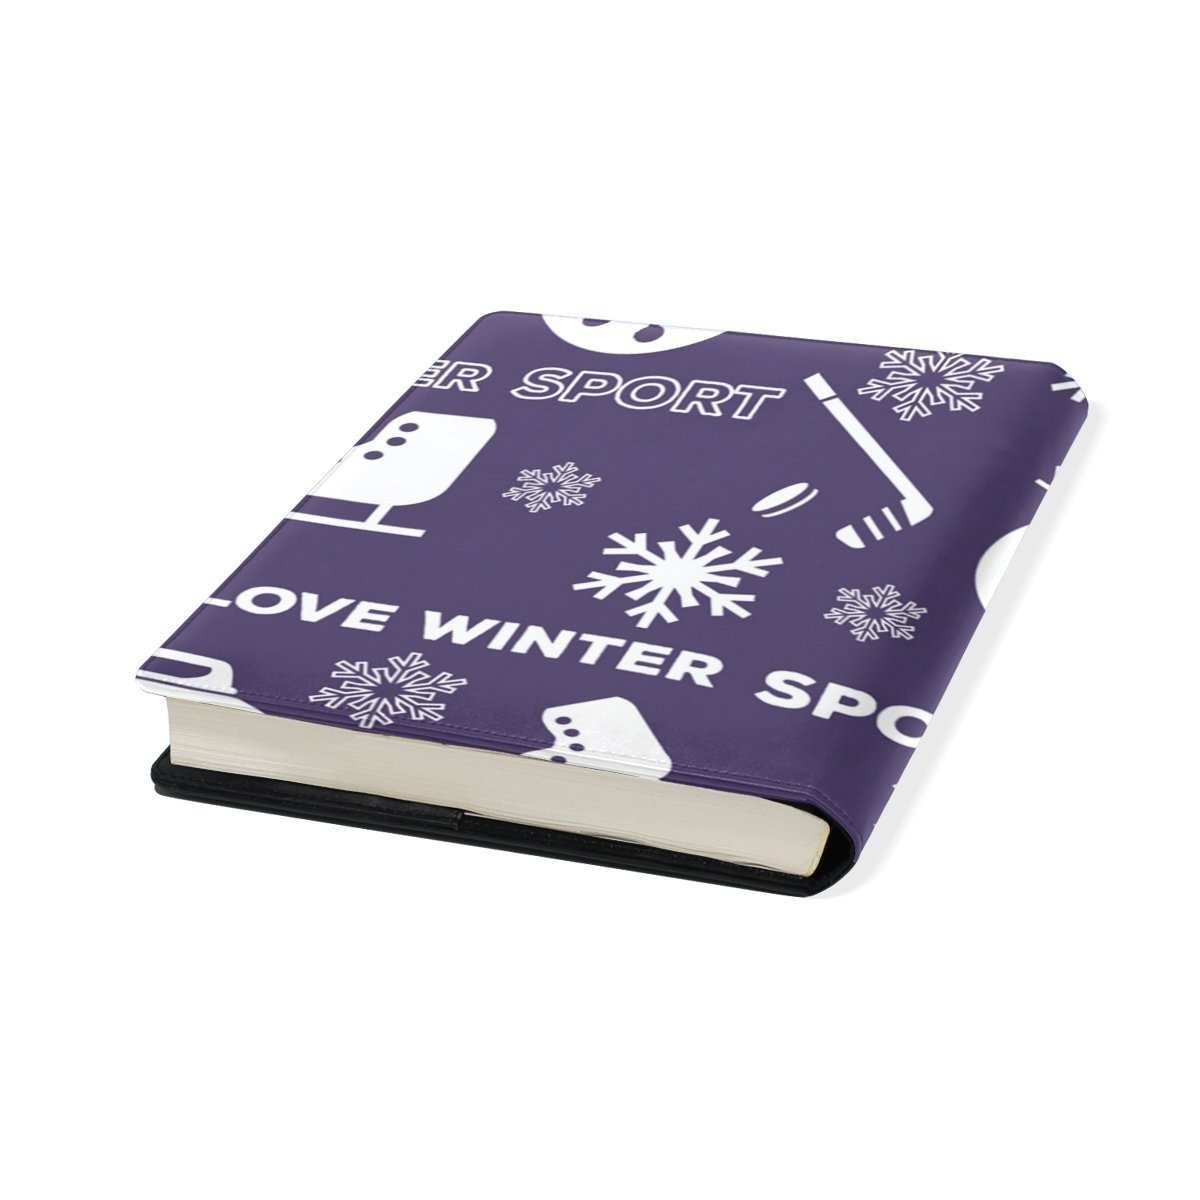 Sunlome Winter Sports Snowman Pattern Stretchable PU Leather Book Cover 9 x 11 Inches Fits for School Hardcover Textbooks